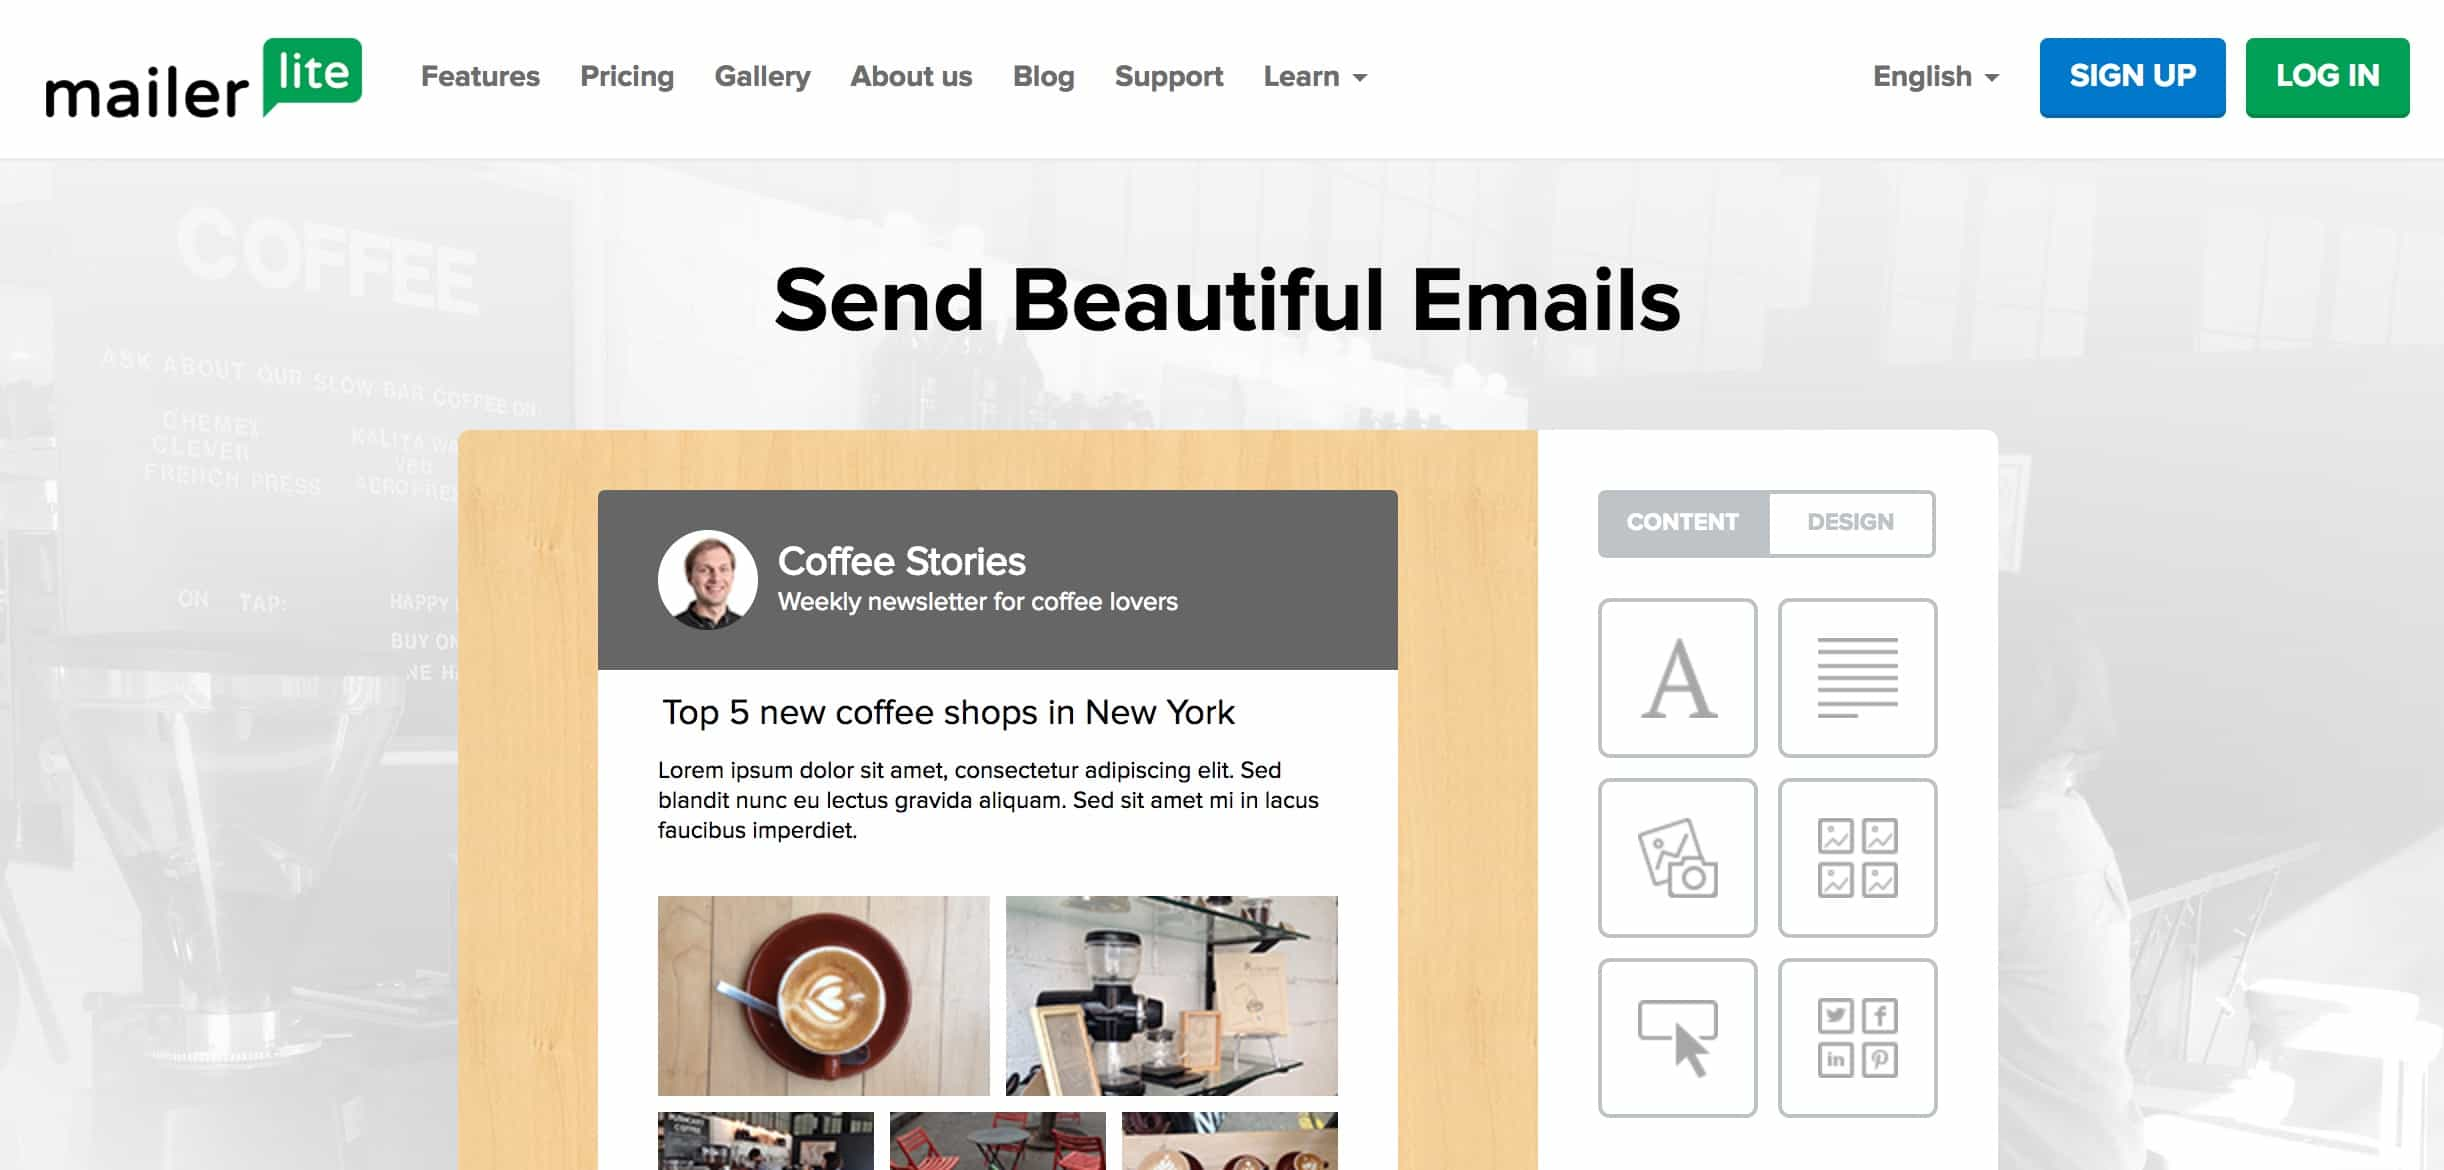 MailerLite is a great free email newsletter service